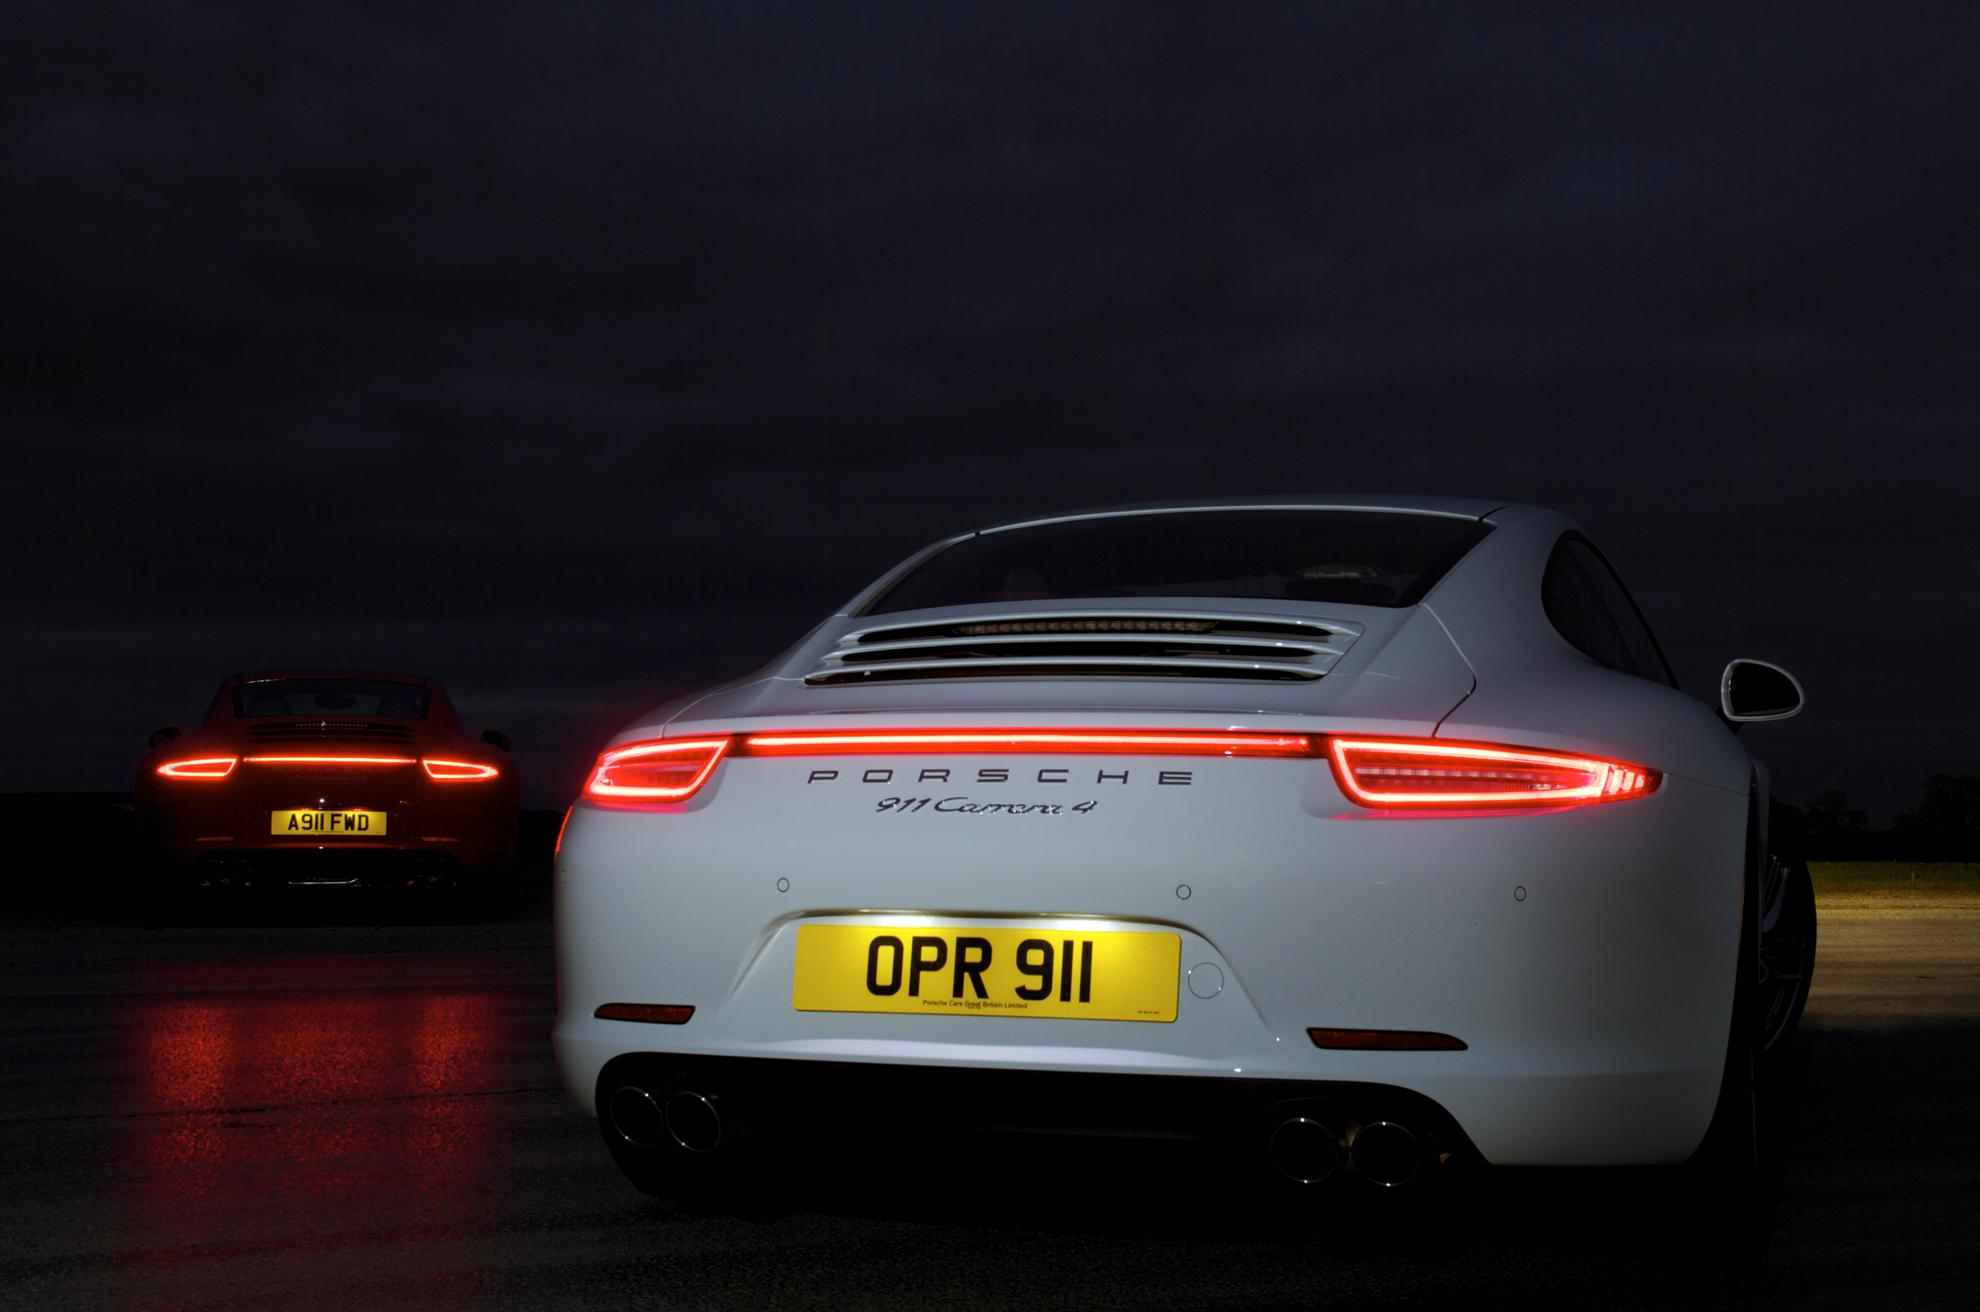 The new Porsche 911 Carrera 4 and 4S